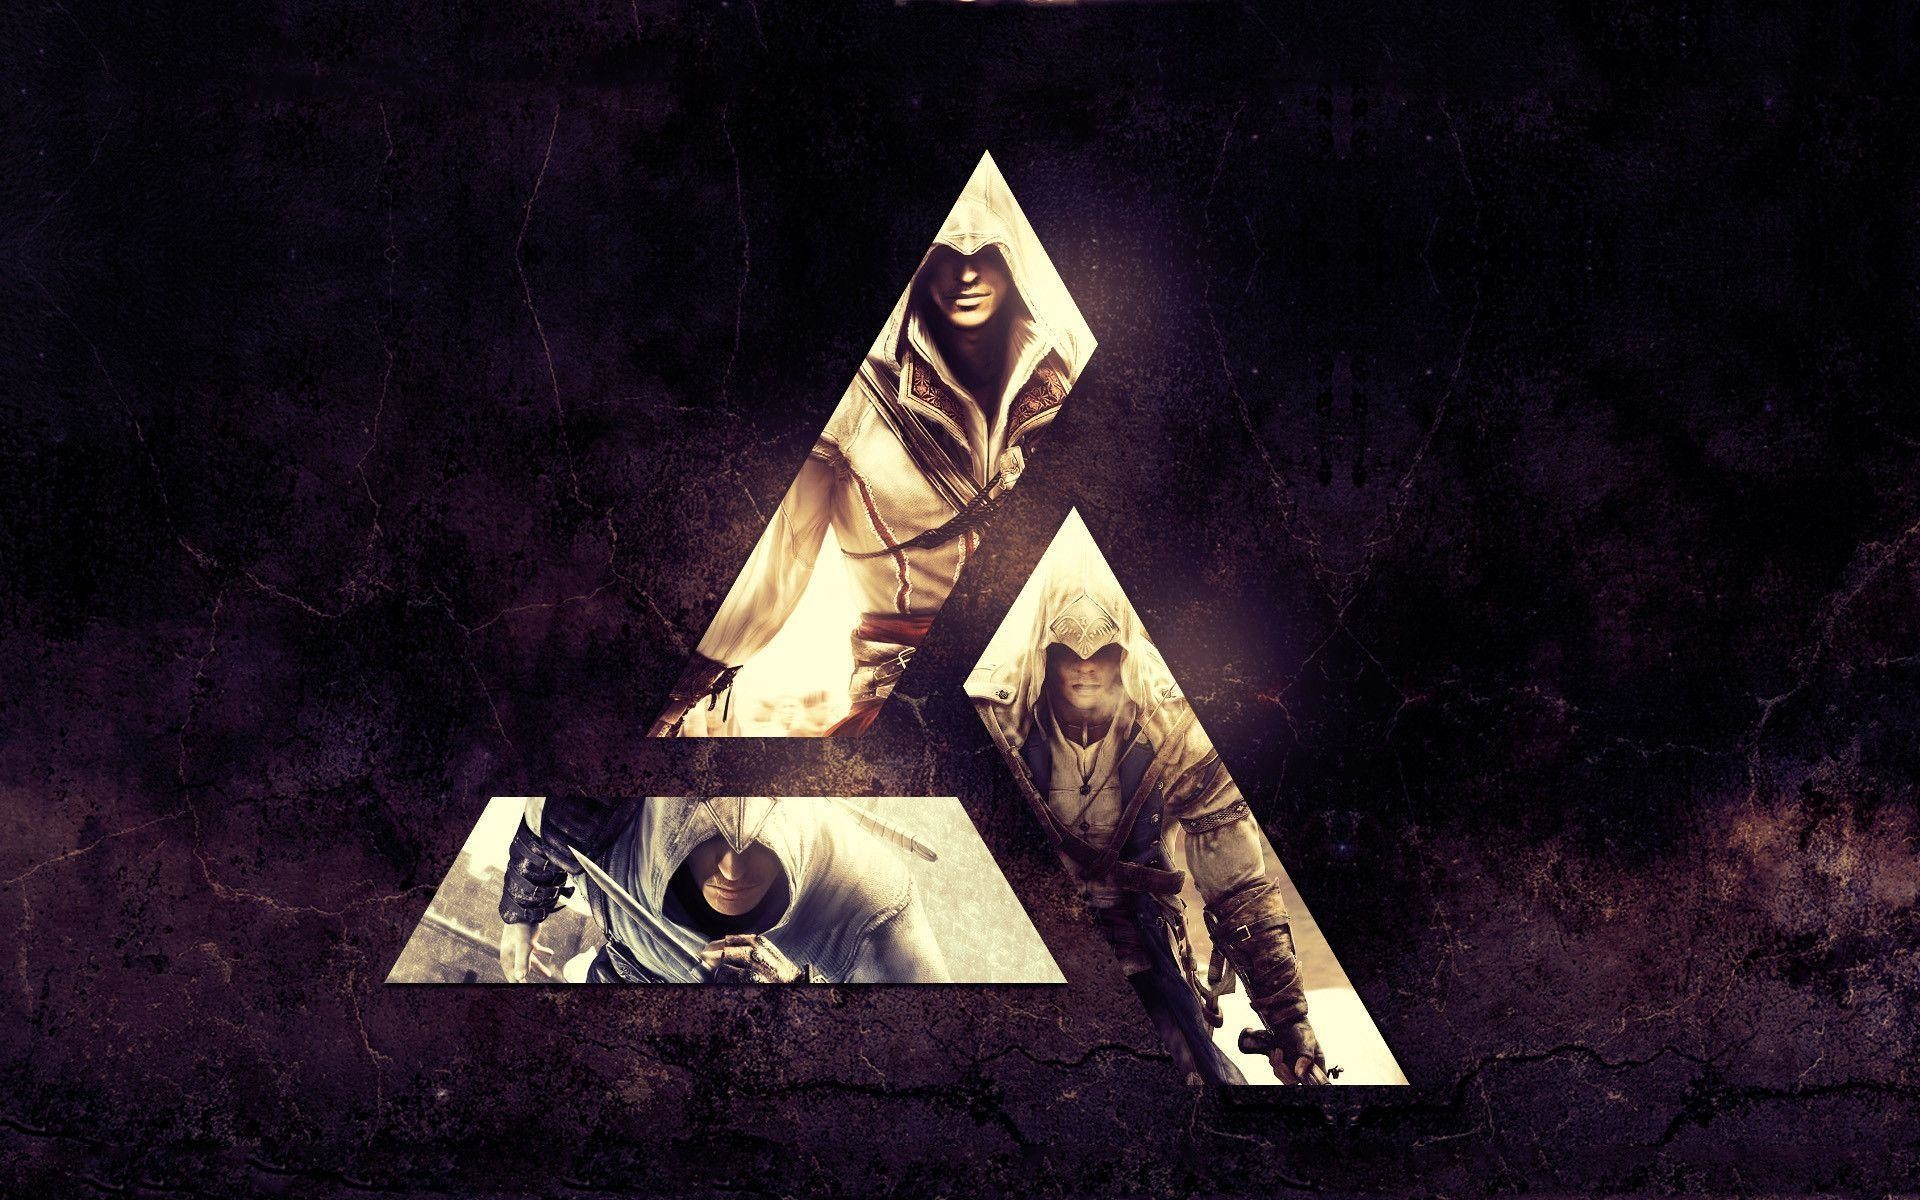 1920x1200 Assassins Creed Wallpapers - Full HD wallpaper search